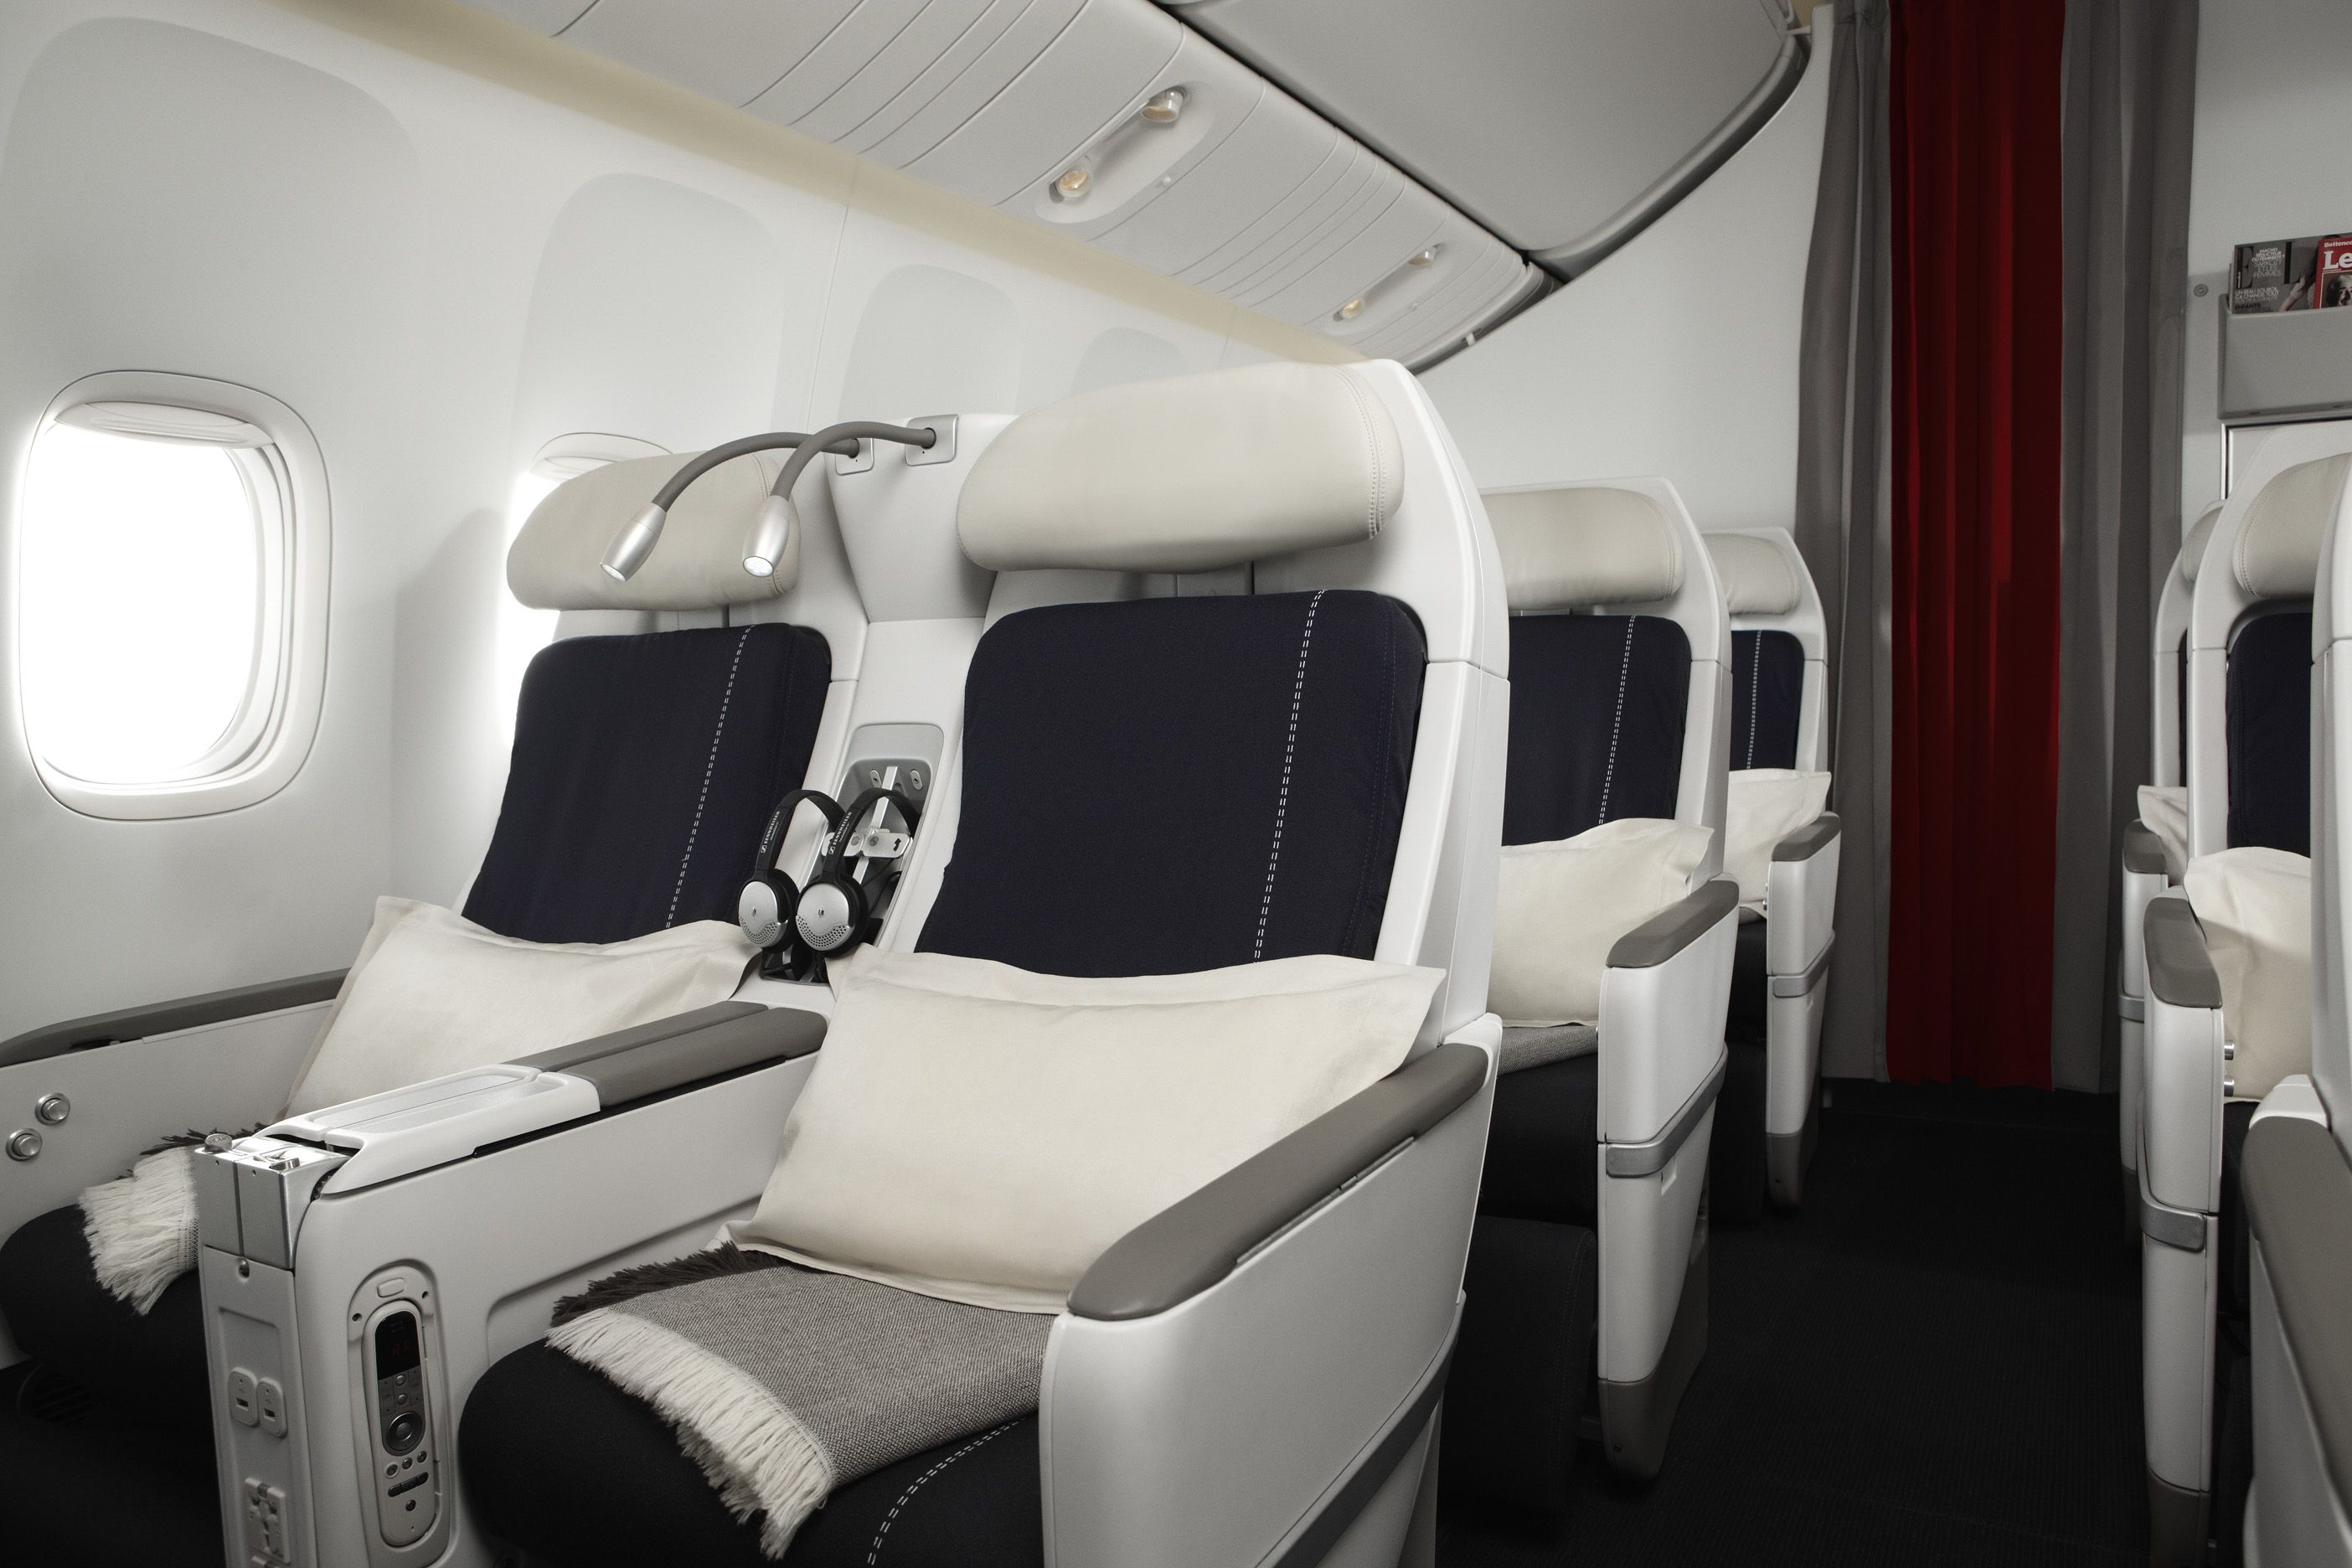 Air France continues investment in its Business Class